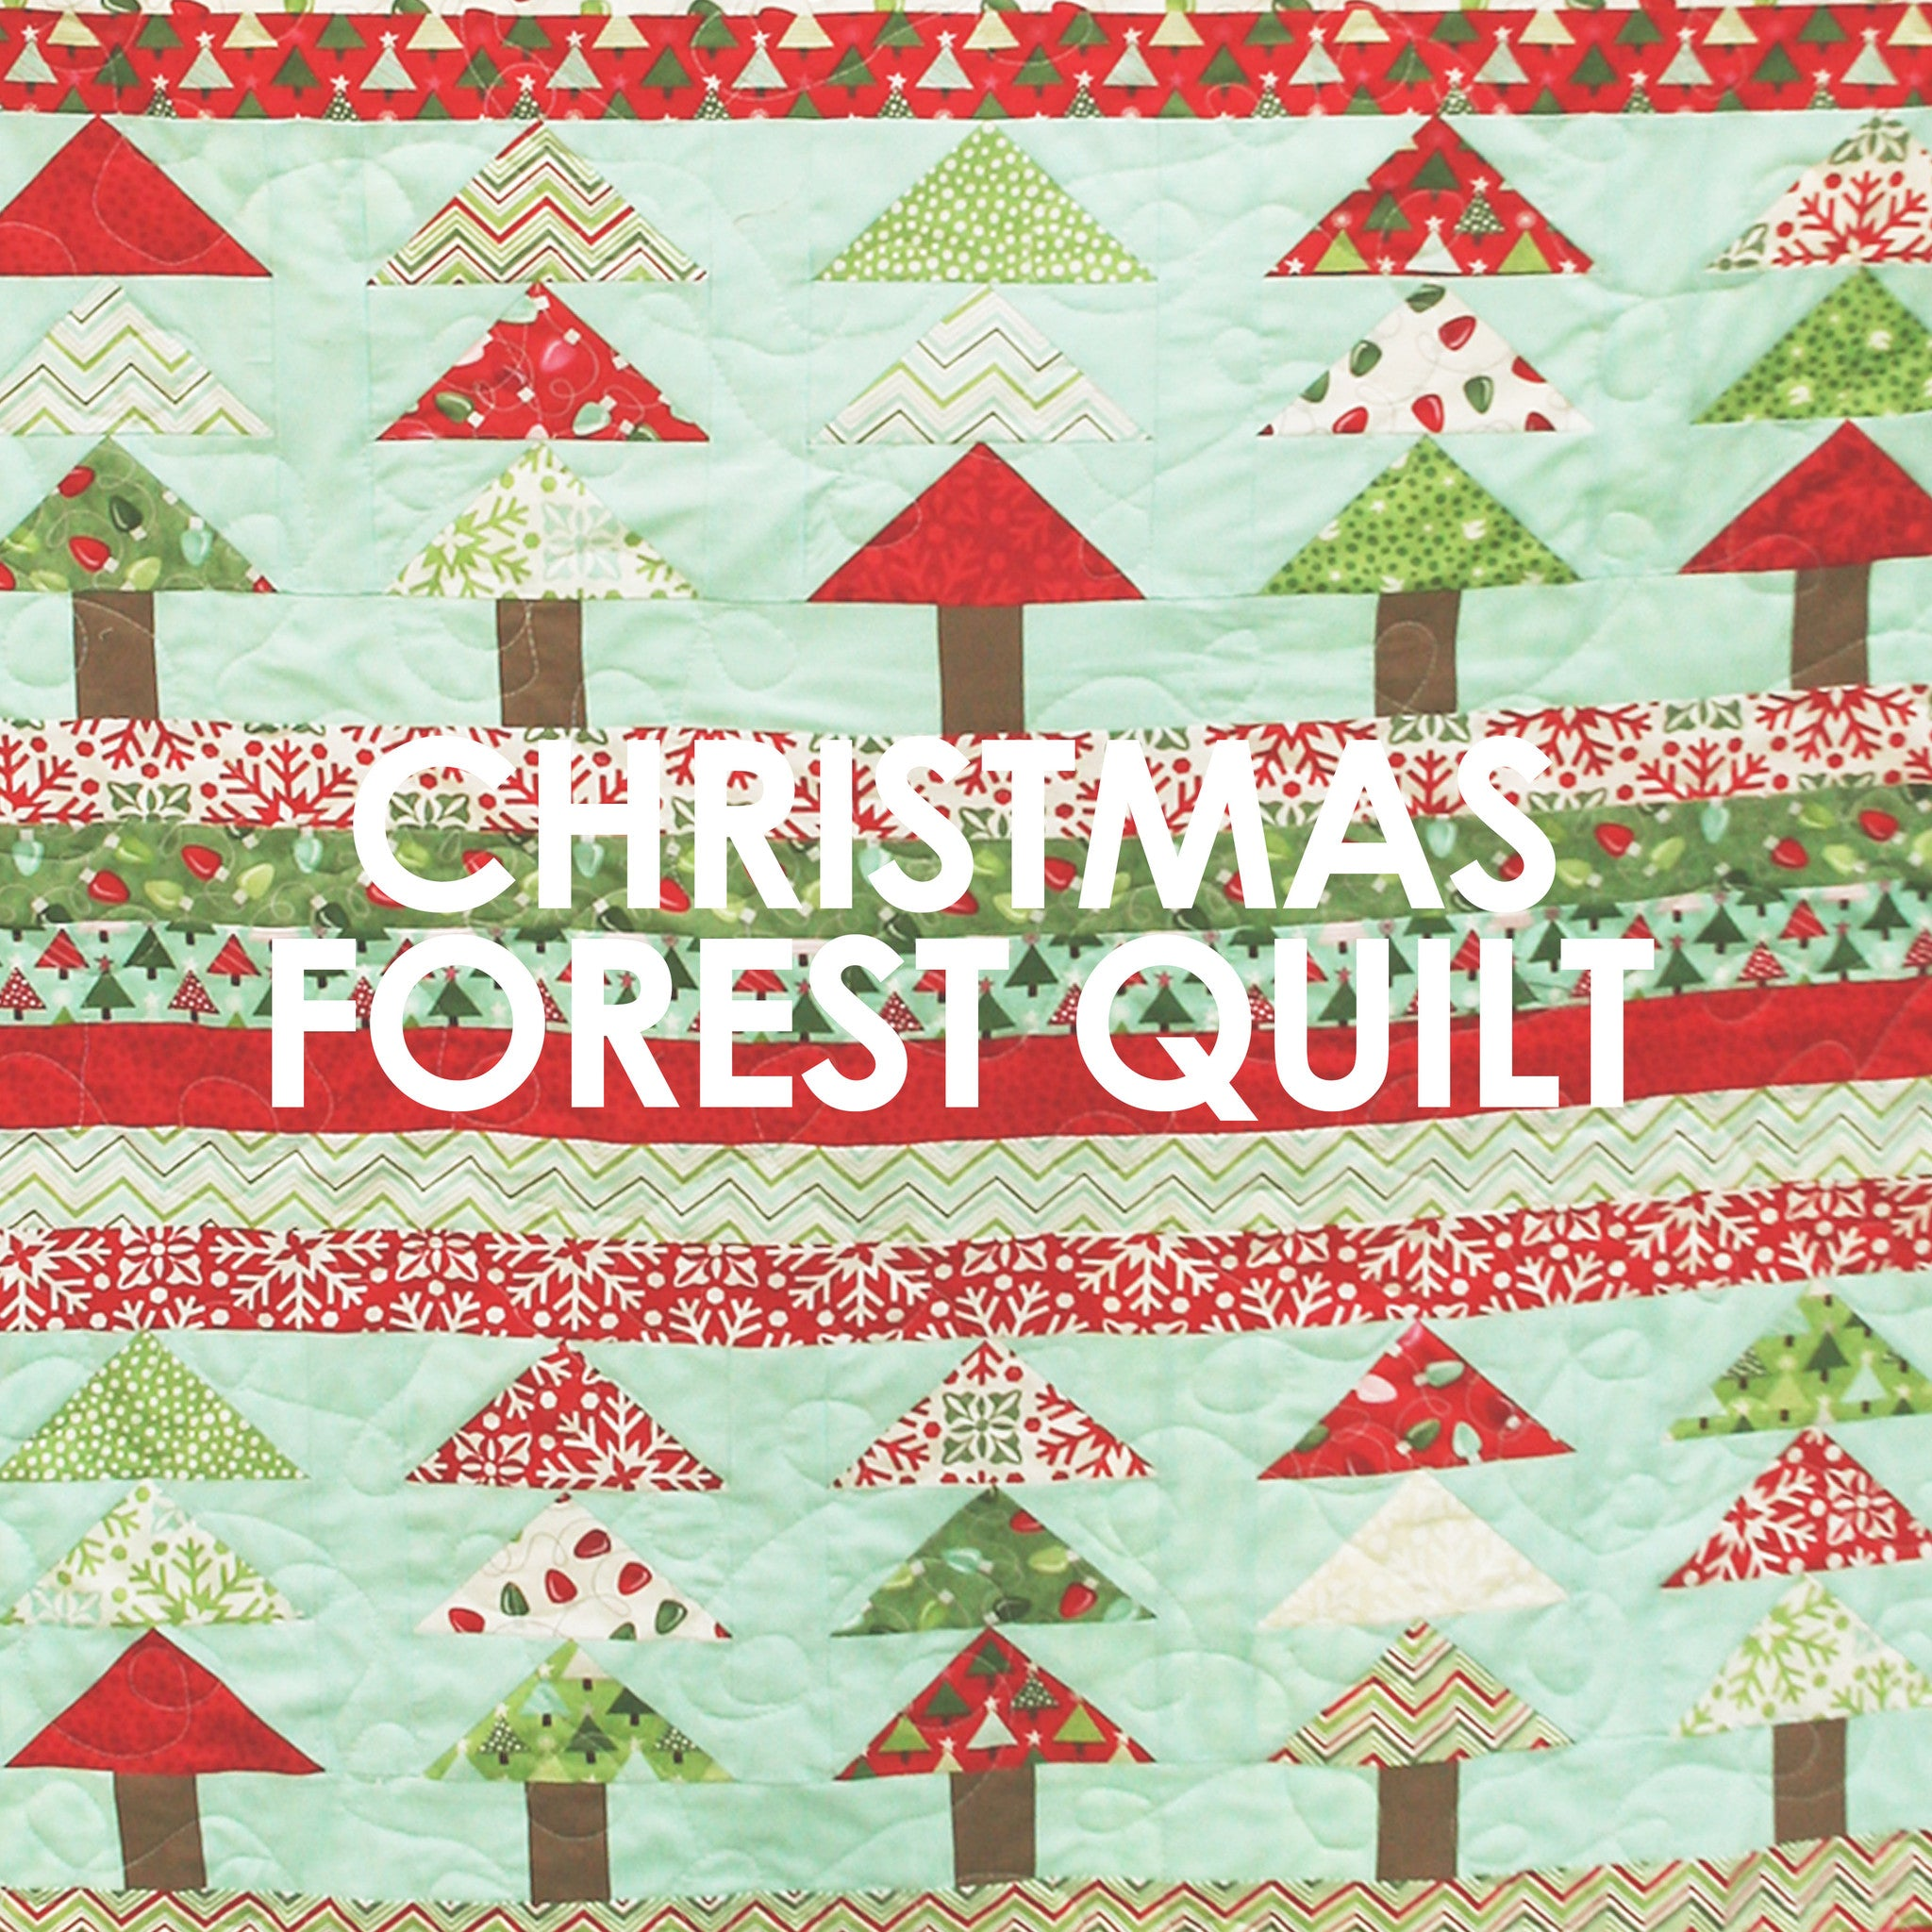 forest doing today kennys kenny s quilting i quiltingasmyart through am quilt what